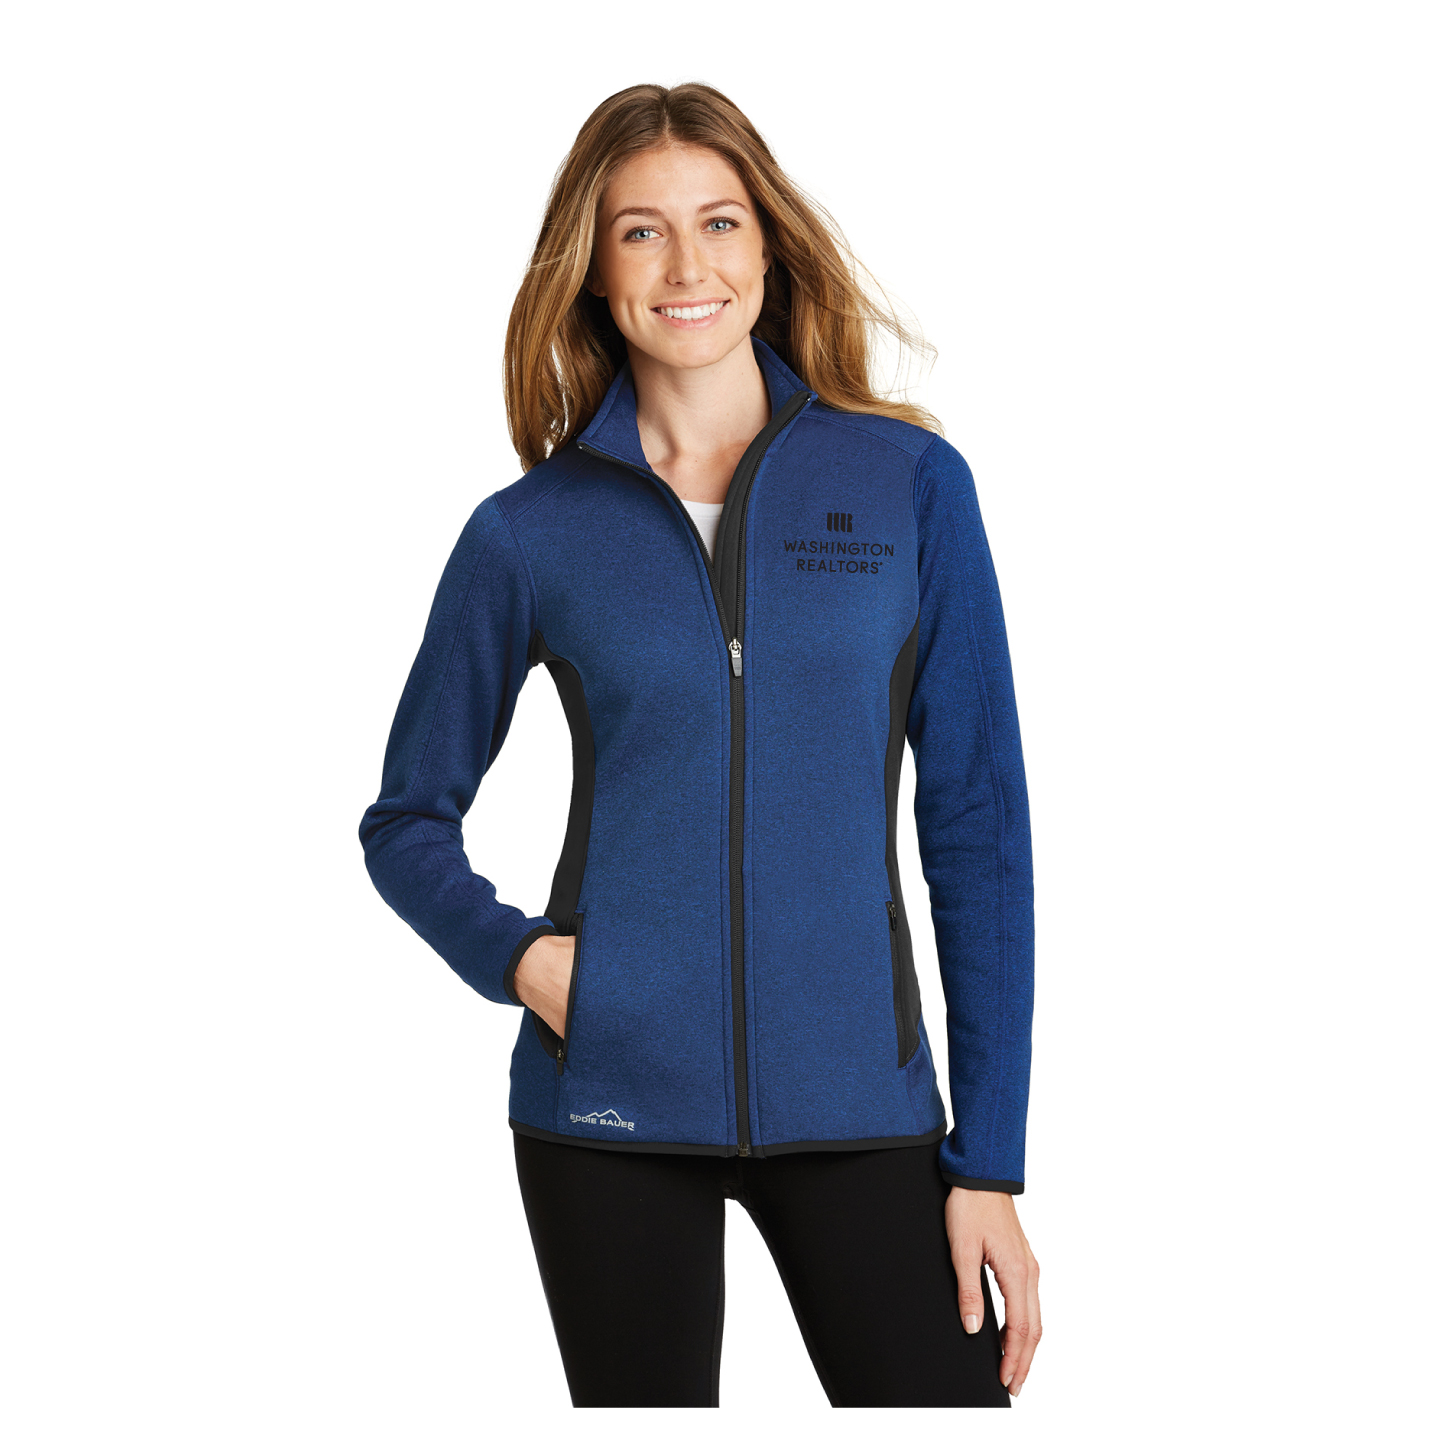 Washington REALTORS® Ladies Eddie Bauer Fleece Jacket